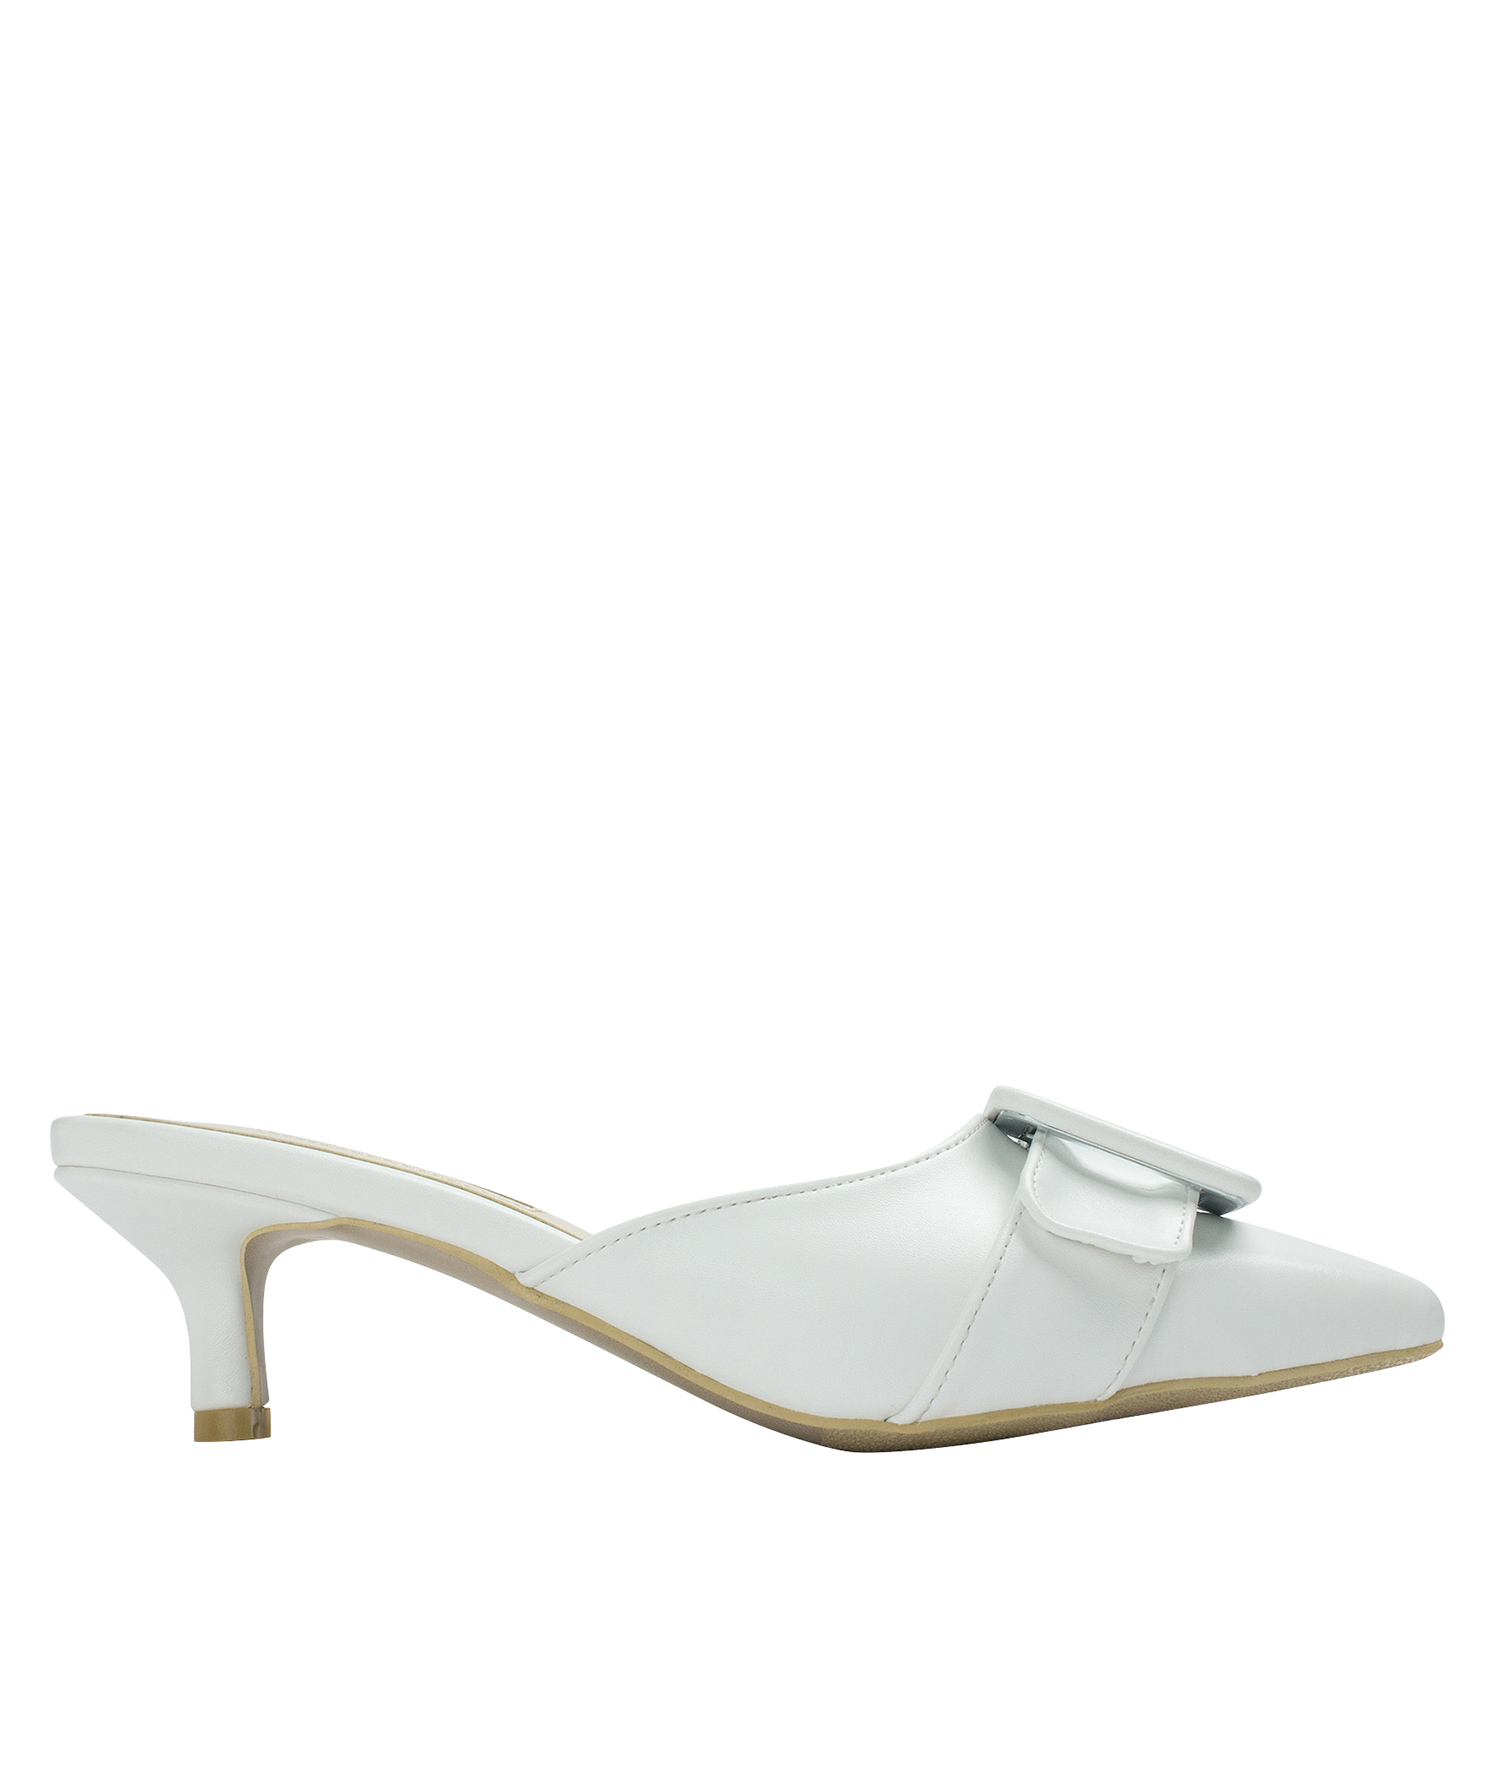 7a98b587542d AnnaKastle Womens Pointed Toe Kitten Heel Mules White